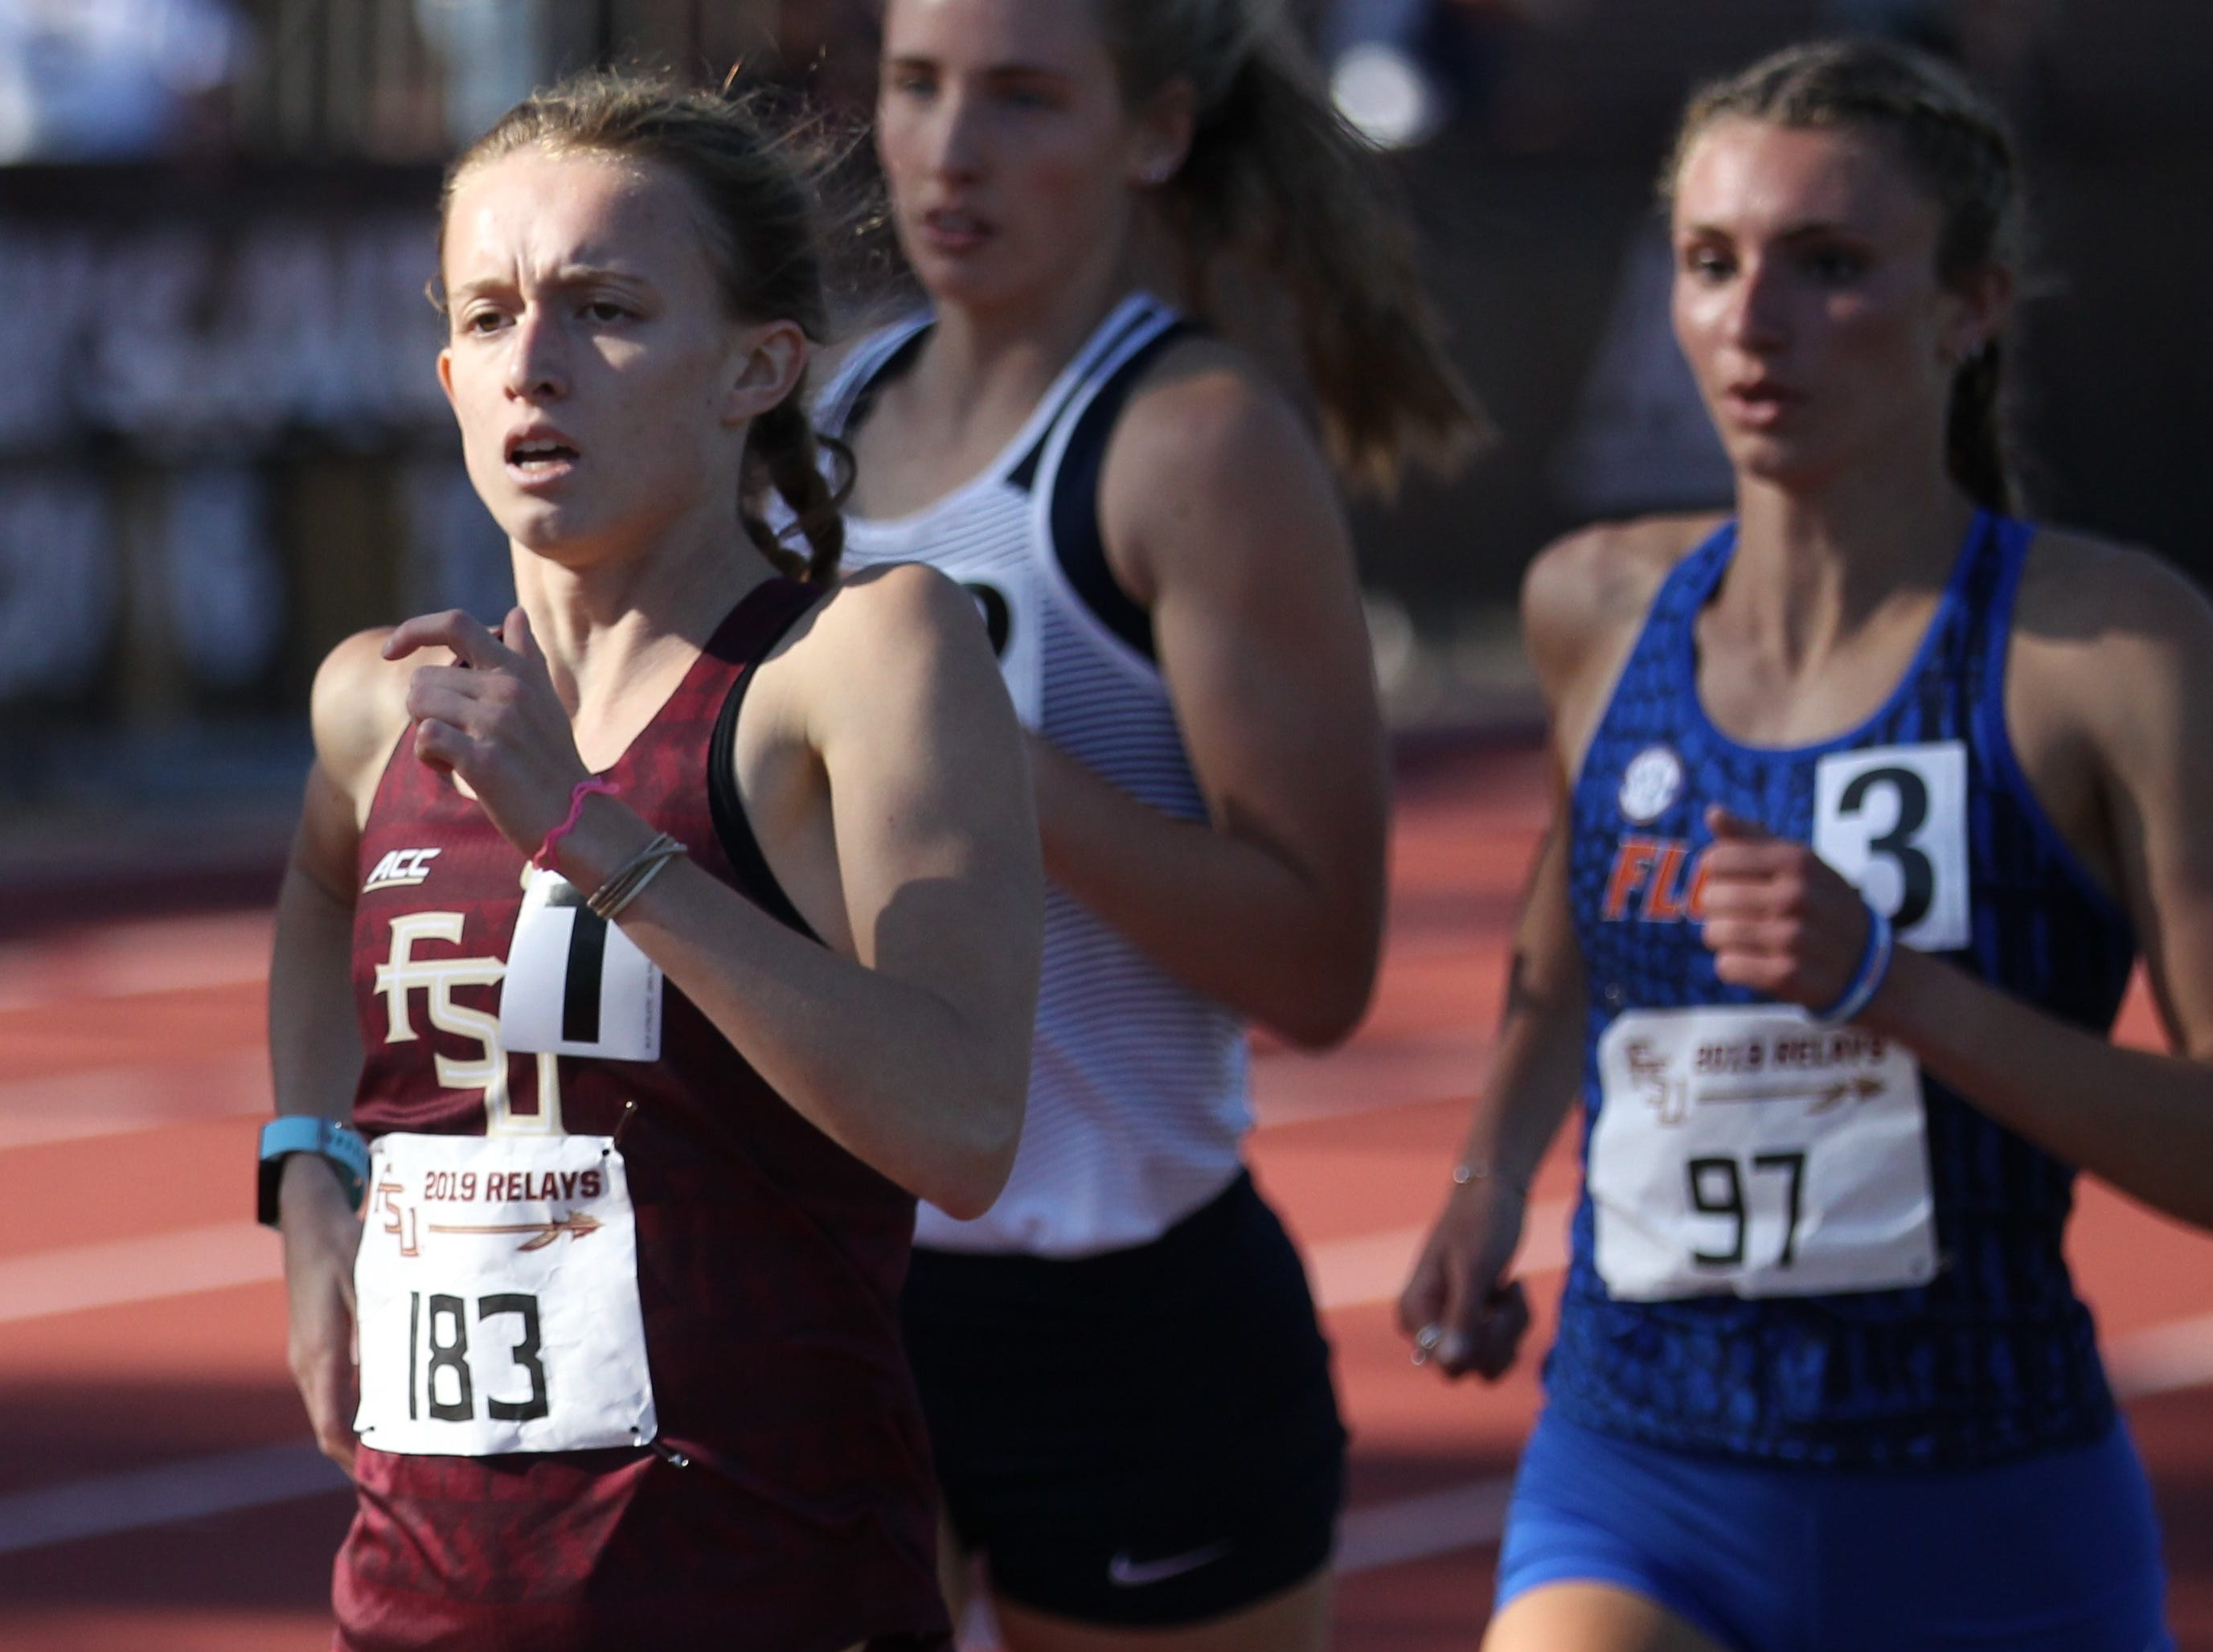 Florida State junior Eleanor Wallace races the 1500-meter run during Friday's college portion of the FSU Relays at Mike Long Track on March 22, 2019.